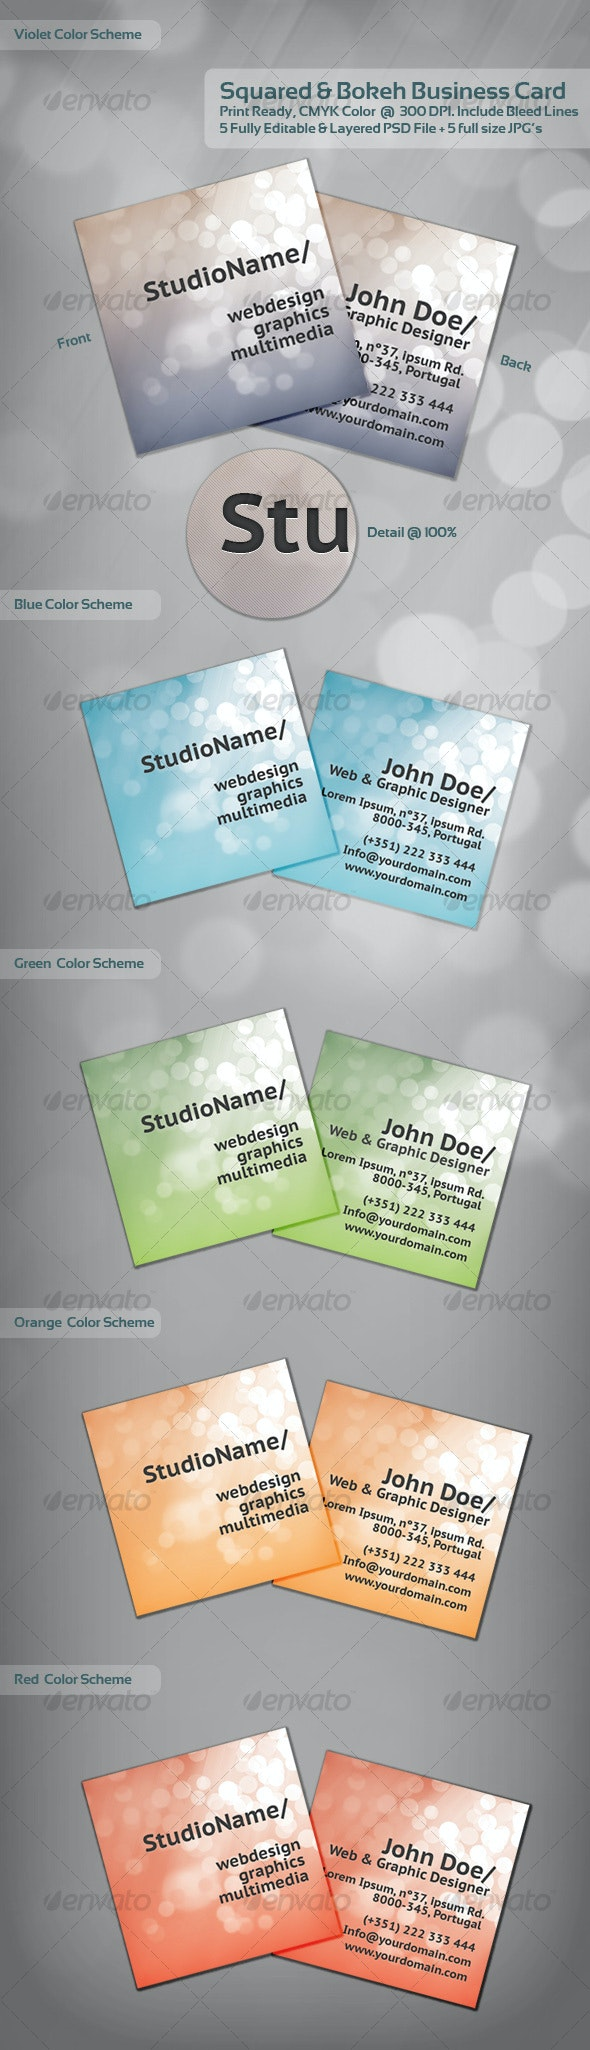 Squared & Bokeh Business Card - 1 Theme / 5 Colors - Creative Business Cards